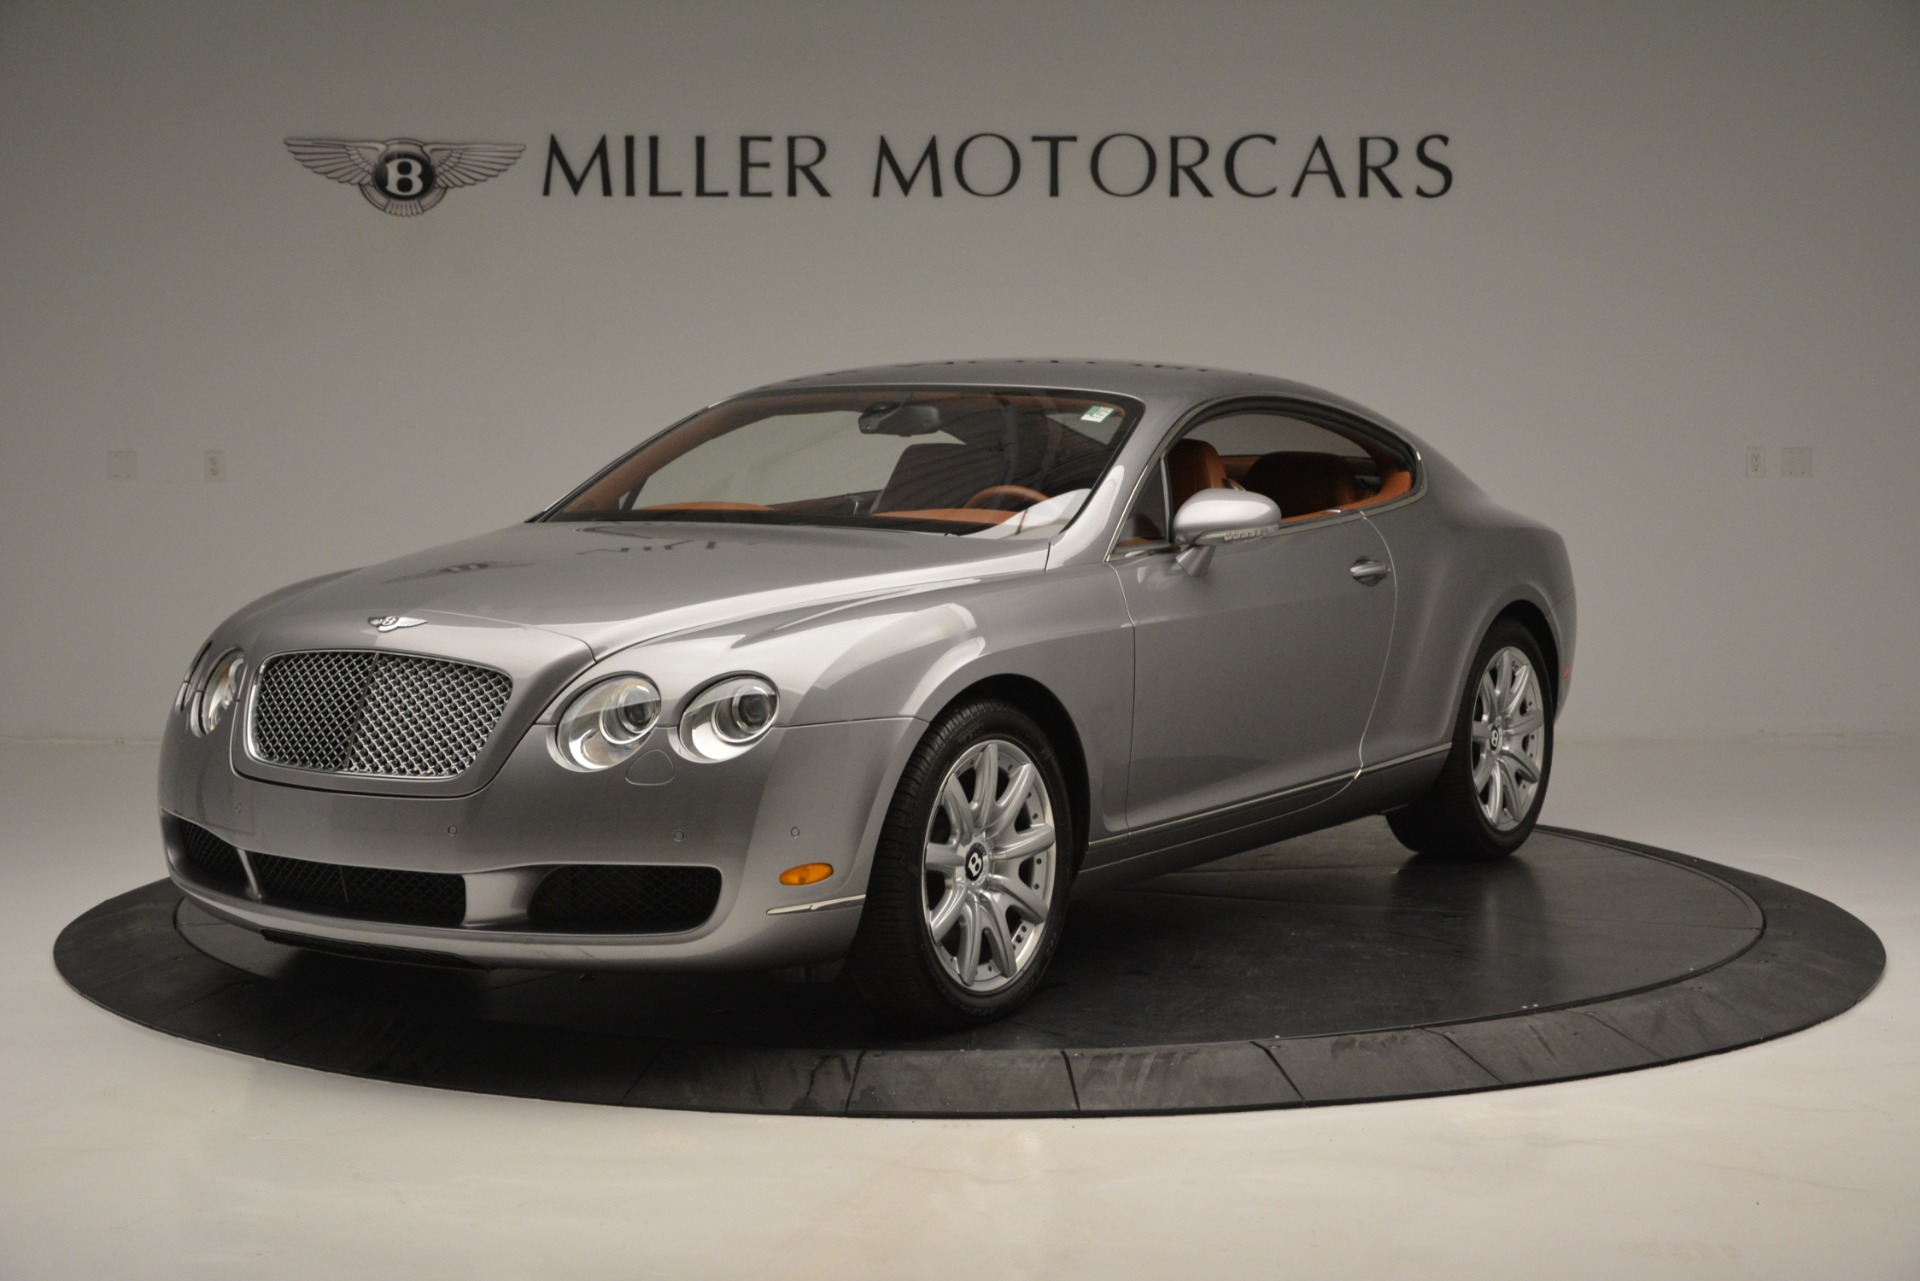 Used 2005 Bentley Continental GT GT Turbo for sale Sold at McLaren Greenwich in Greenwich CT 06830 1